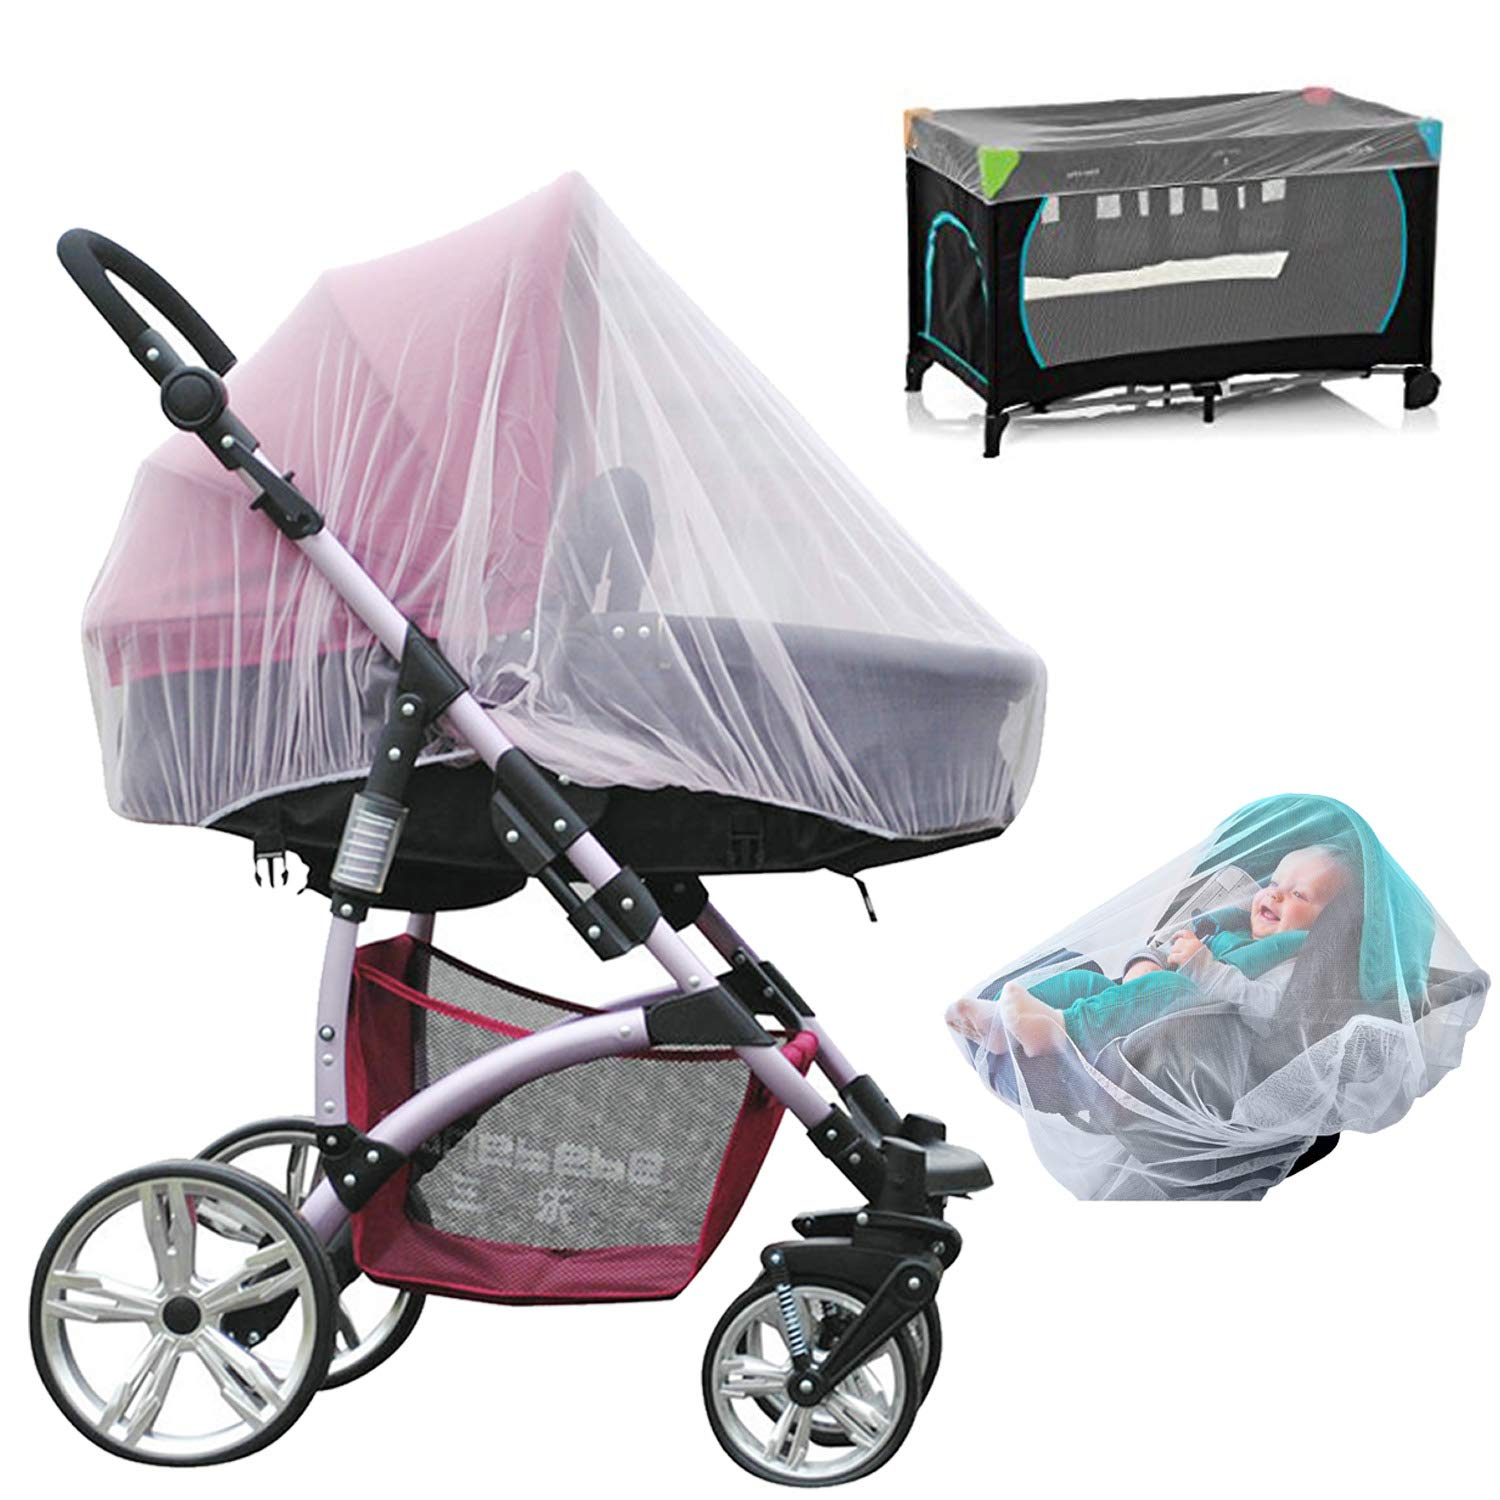 NEPAK 3 Pack Mosquito Net for Baby Stroller,Fits Crib,Car Seat and Infant Carrier,Bassinet,Elastic,Breathable(White)